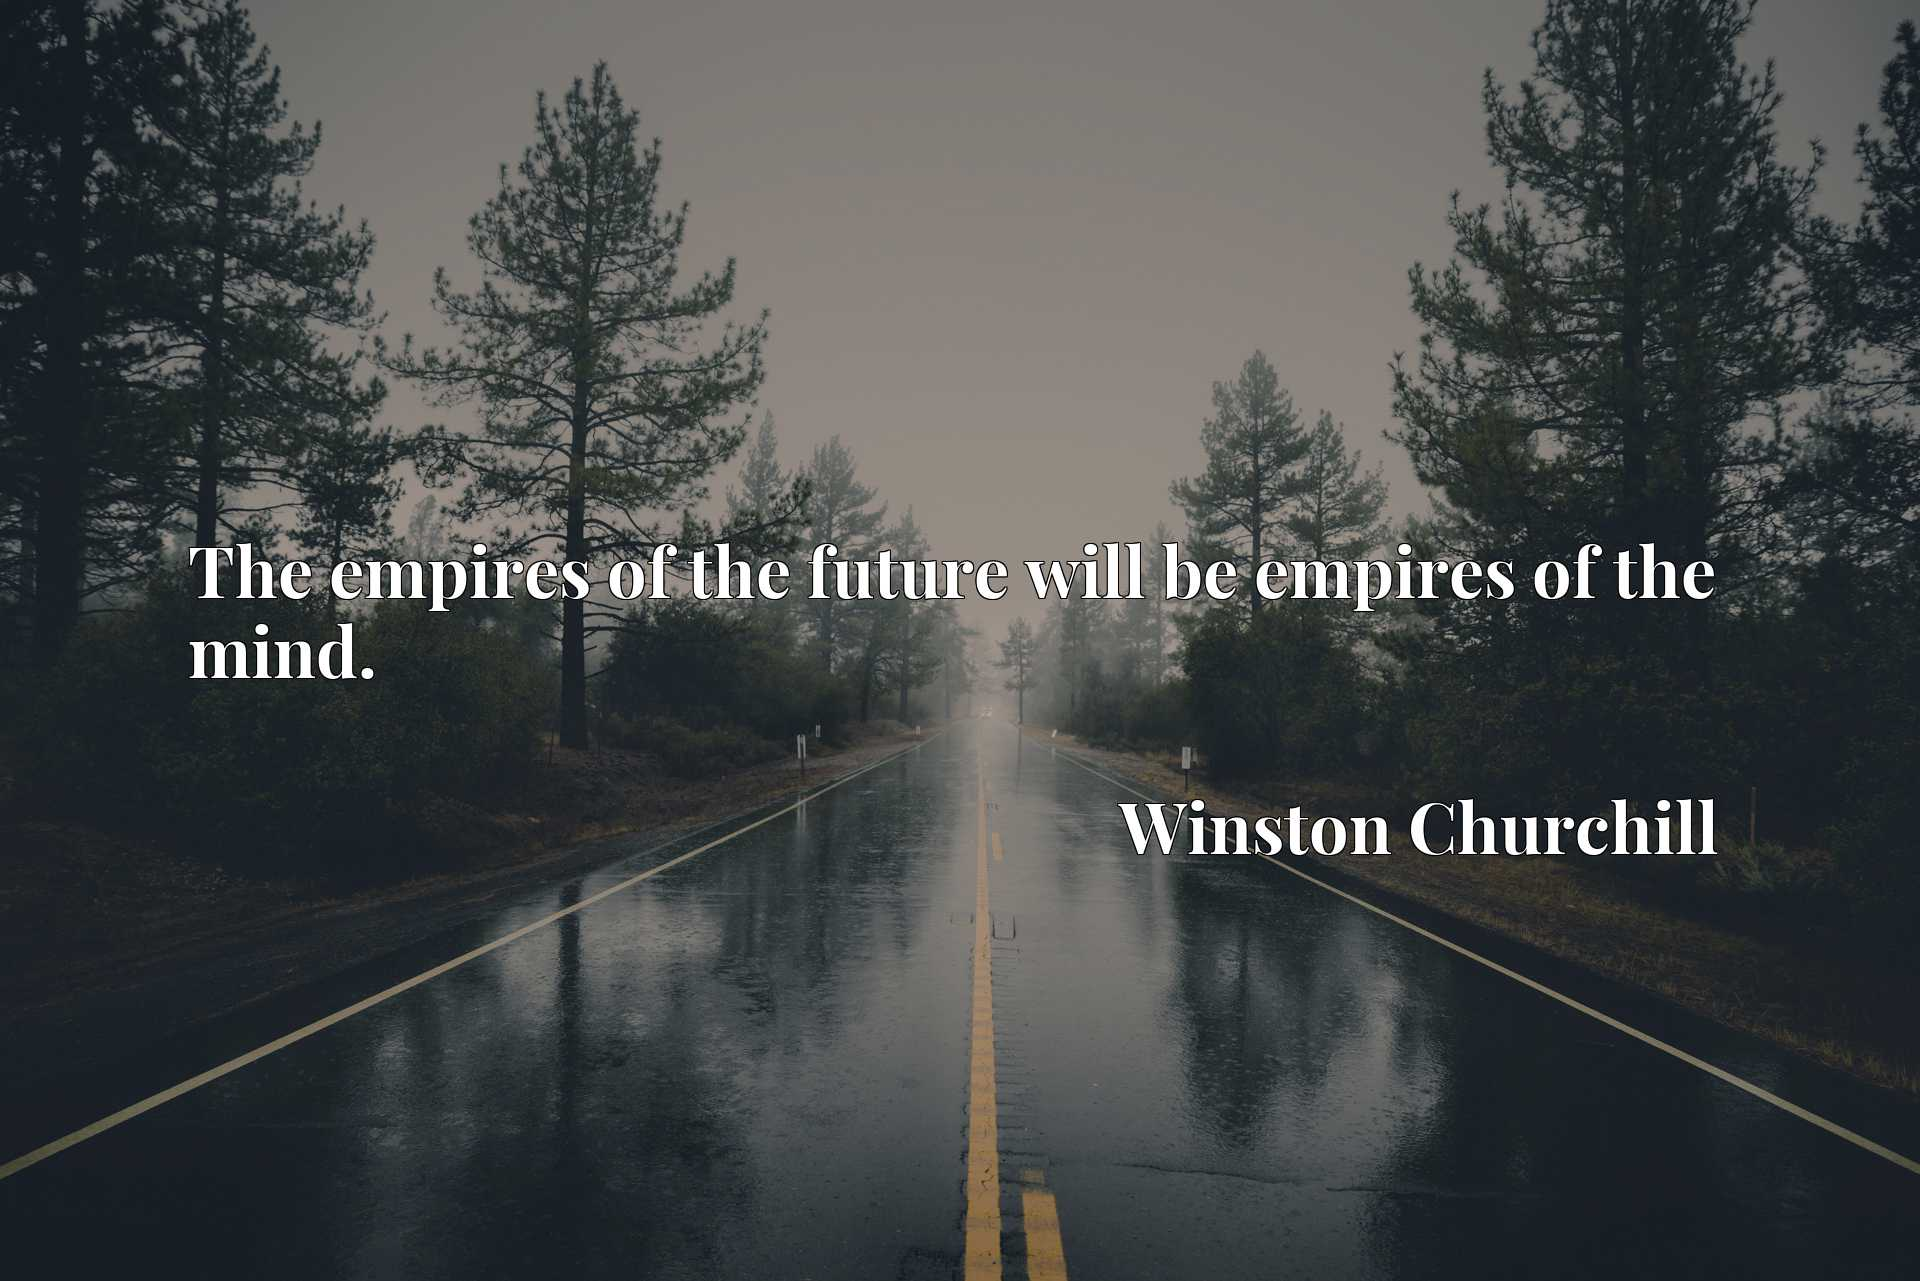 The empires of the future will be empires of the mind.